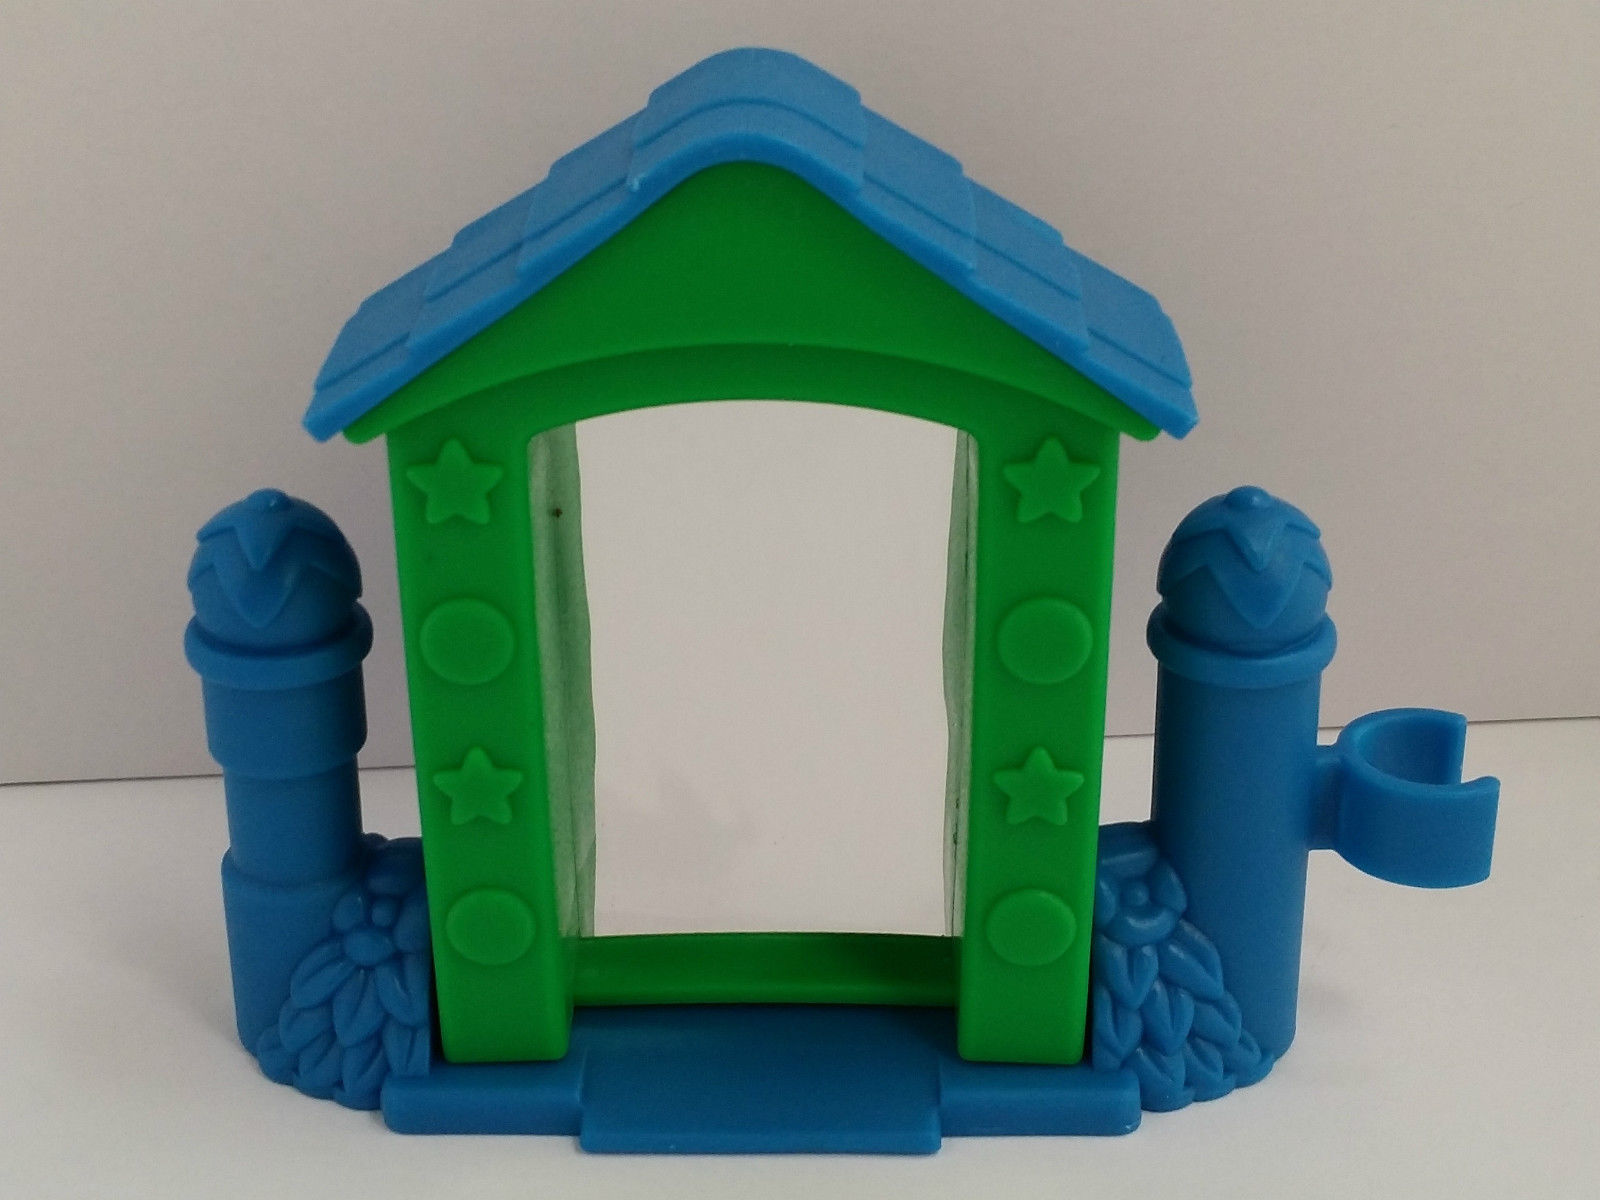 Fisher Price Little People FUN MIRROR STAND for Ferris Wheel Toy Carnival Fair